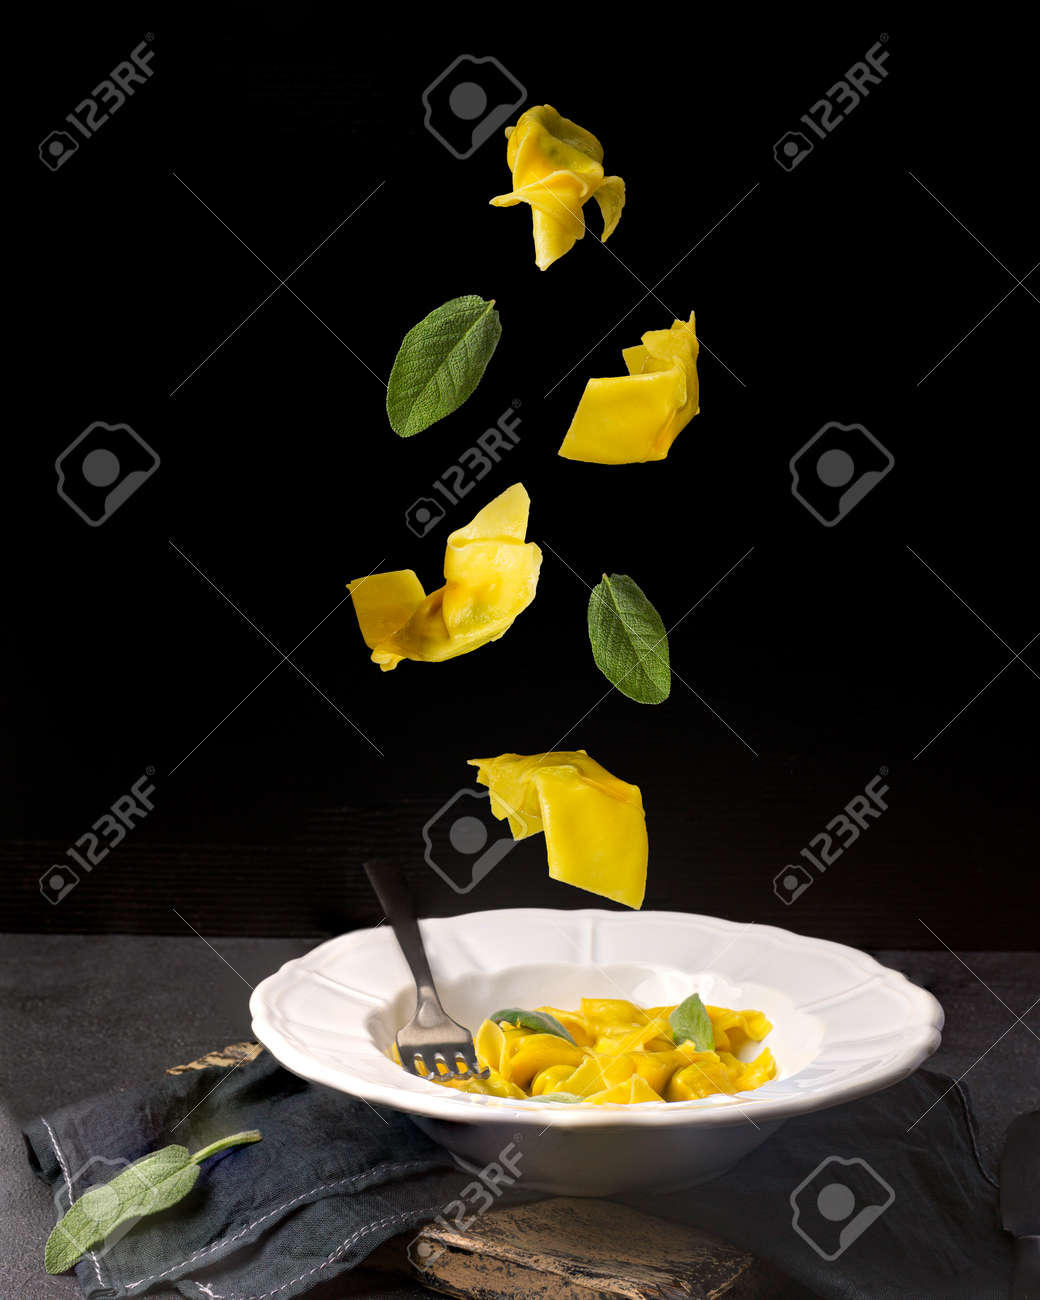 Creative concept with falling food on black backdrop - 172180392